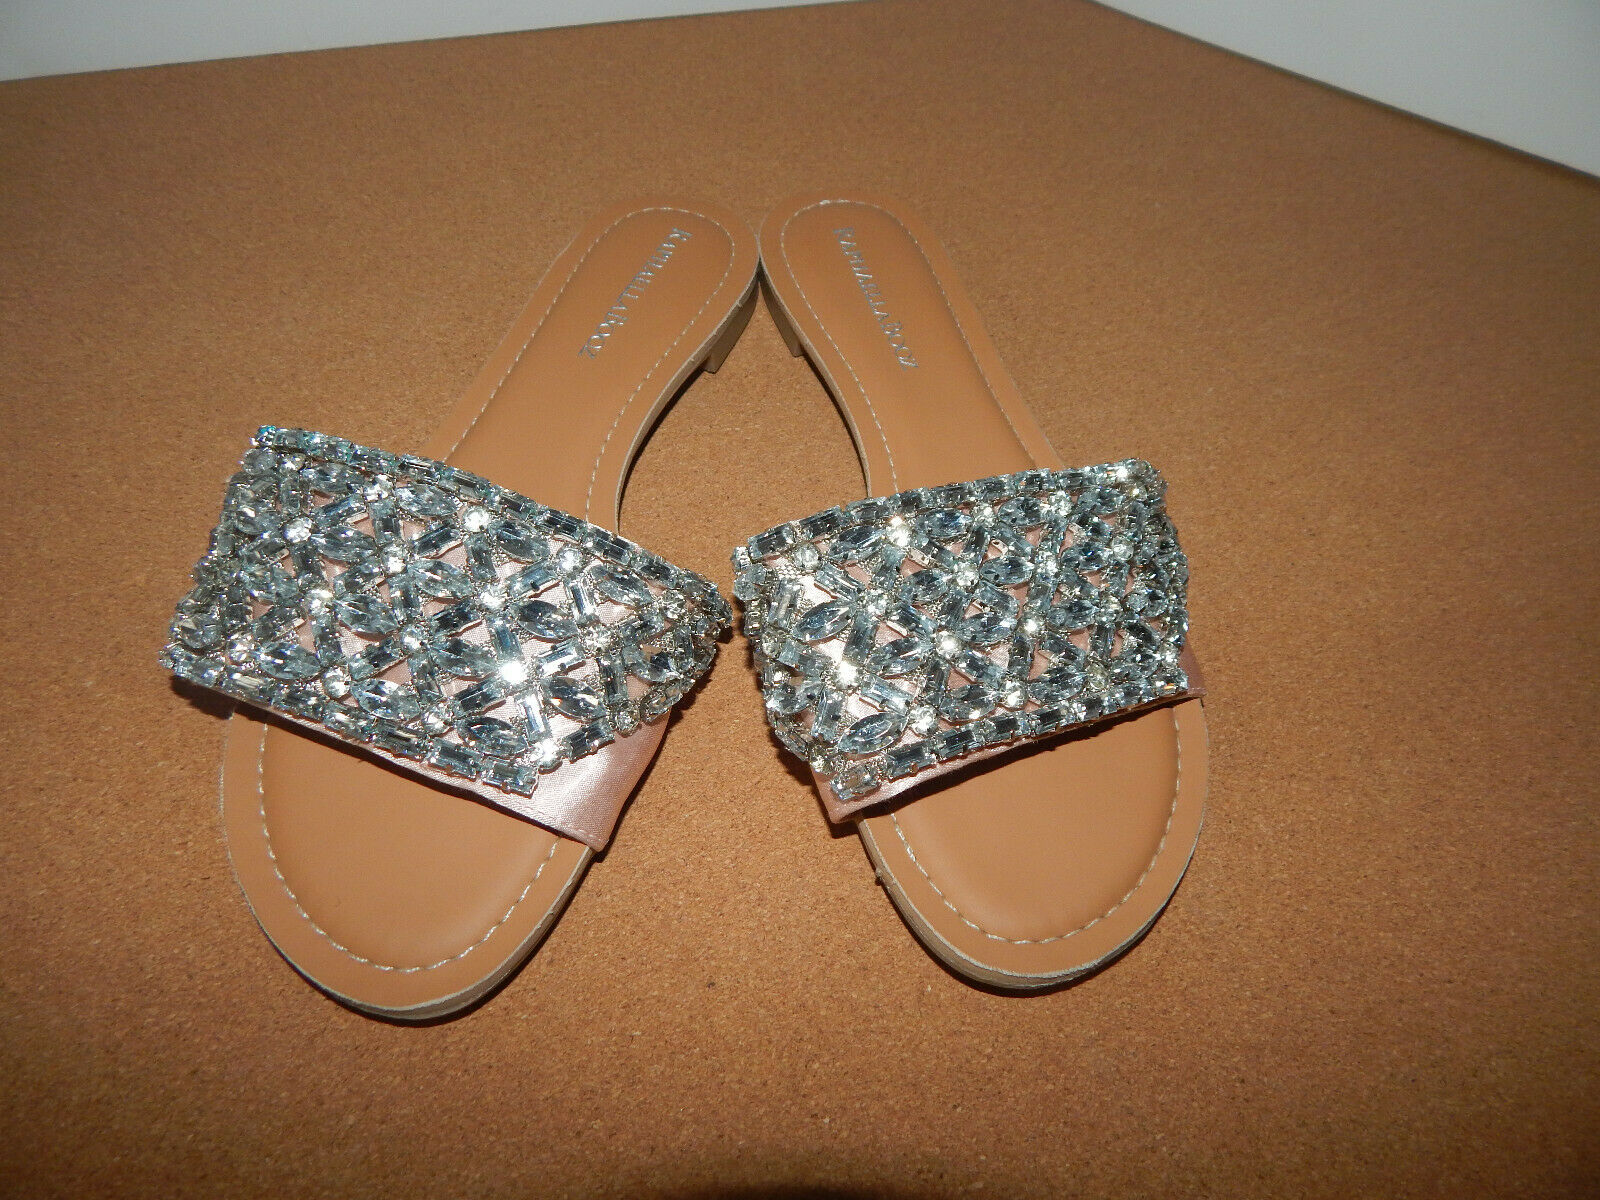 BHLDN 9 RAPHAELLA BOOZ SANDALS FANCY BRIDE EVENING RHINESTONES LEATHER SLIDE